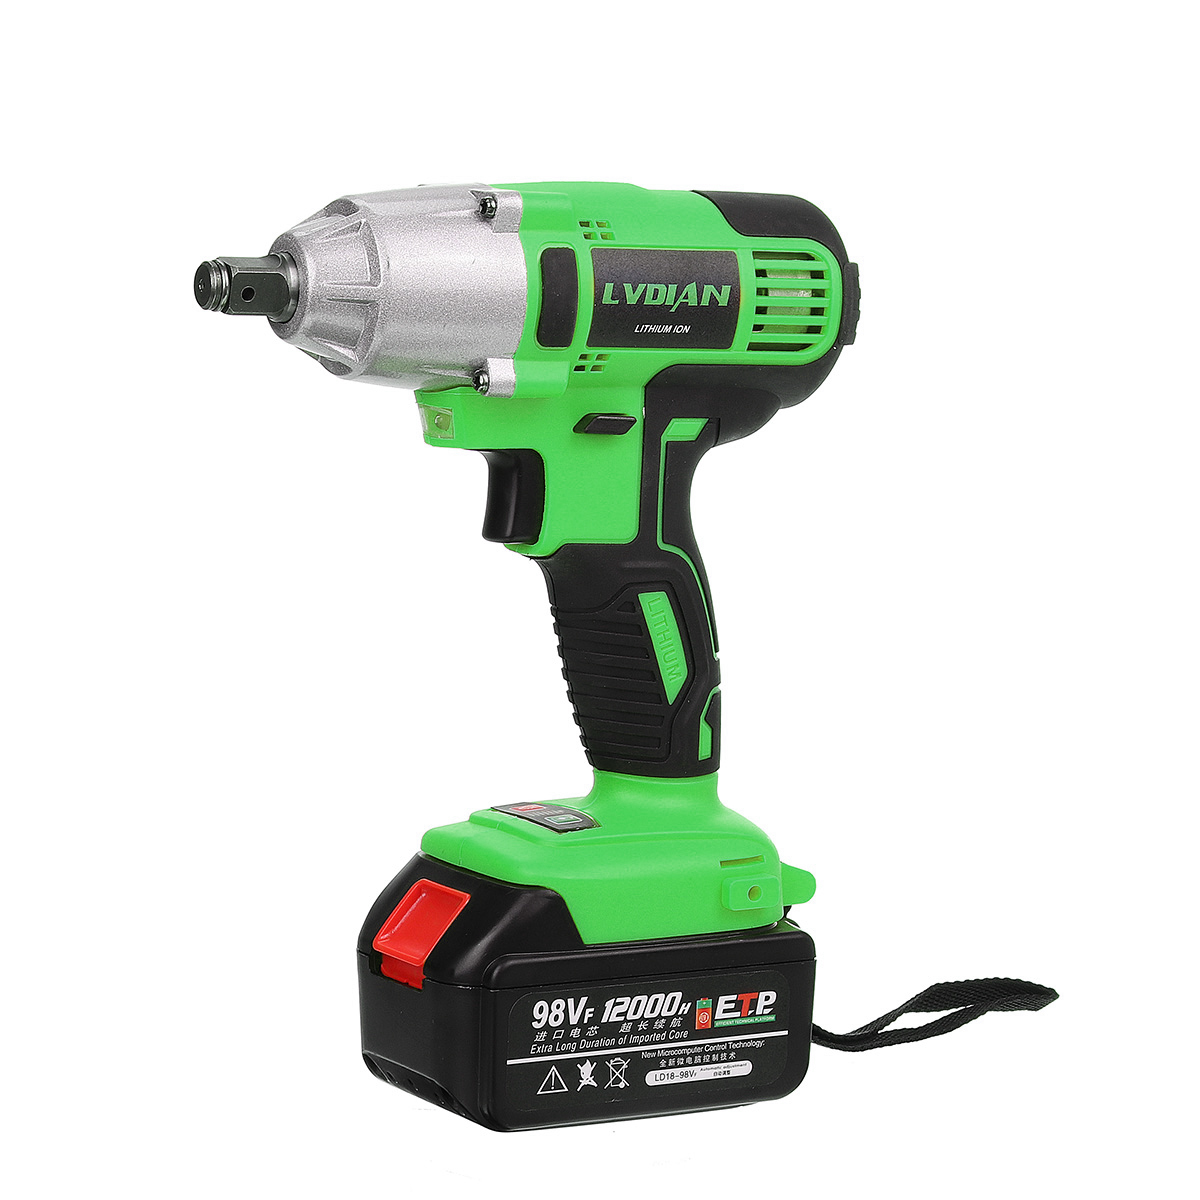 98VF 520Nm Cordless Electric Impact Wrench Powerful Drill Screwdriver Home DIY Electric Wrench Power Tool with 12000mah Battery